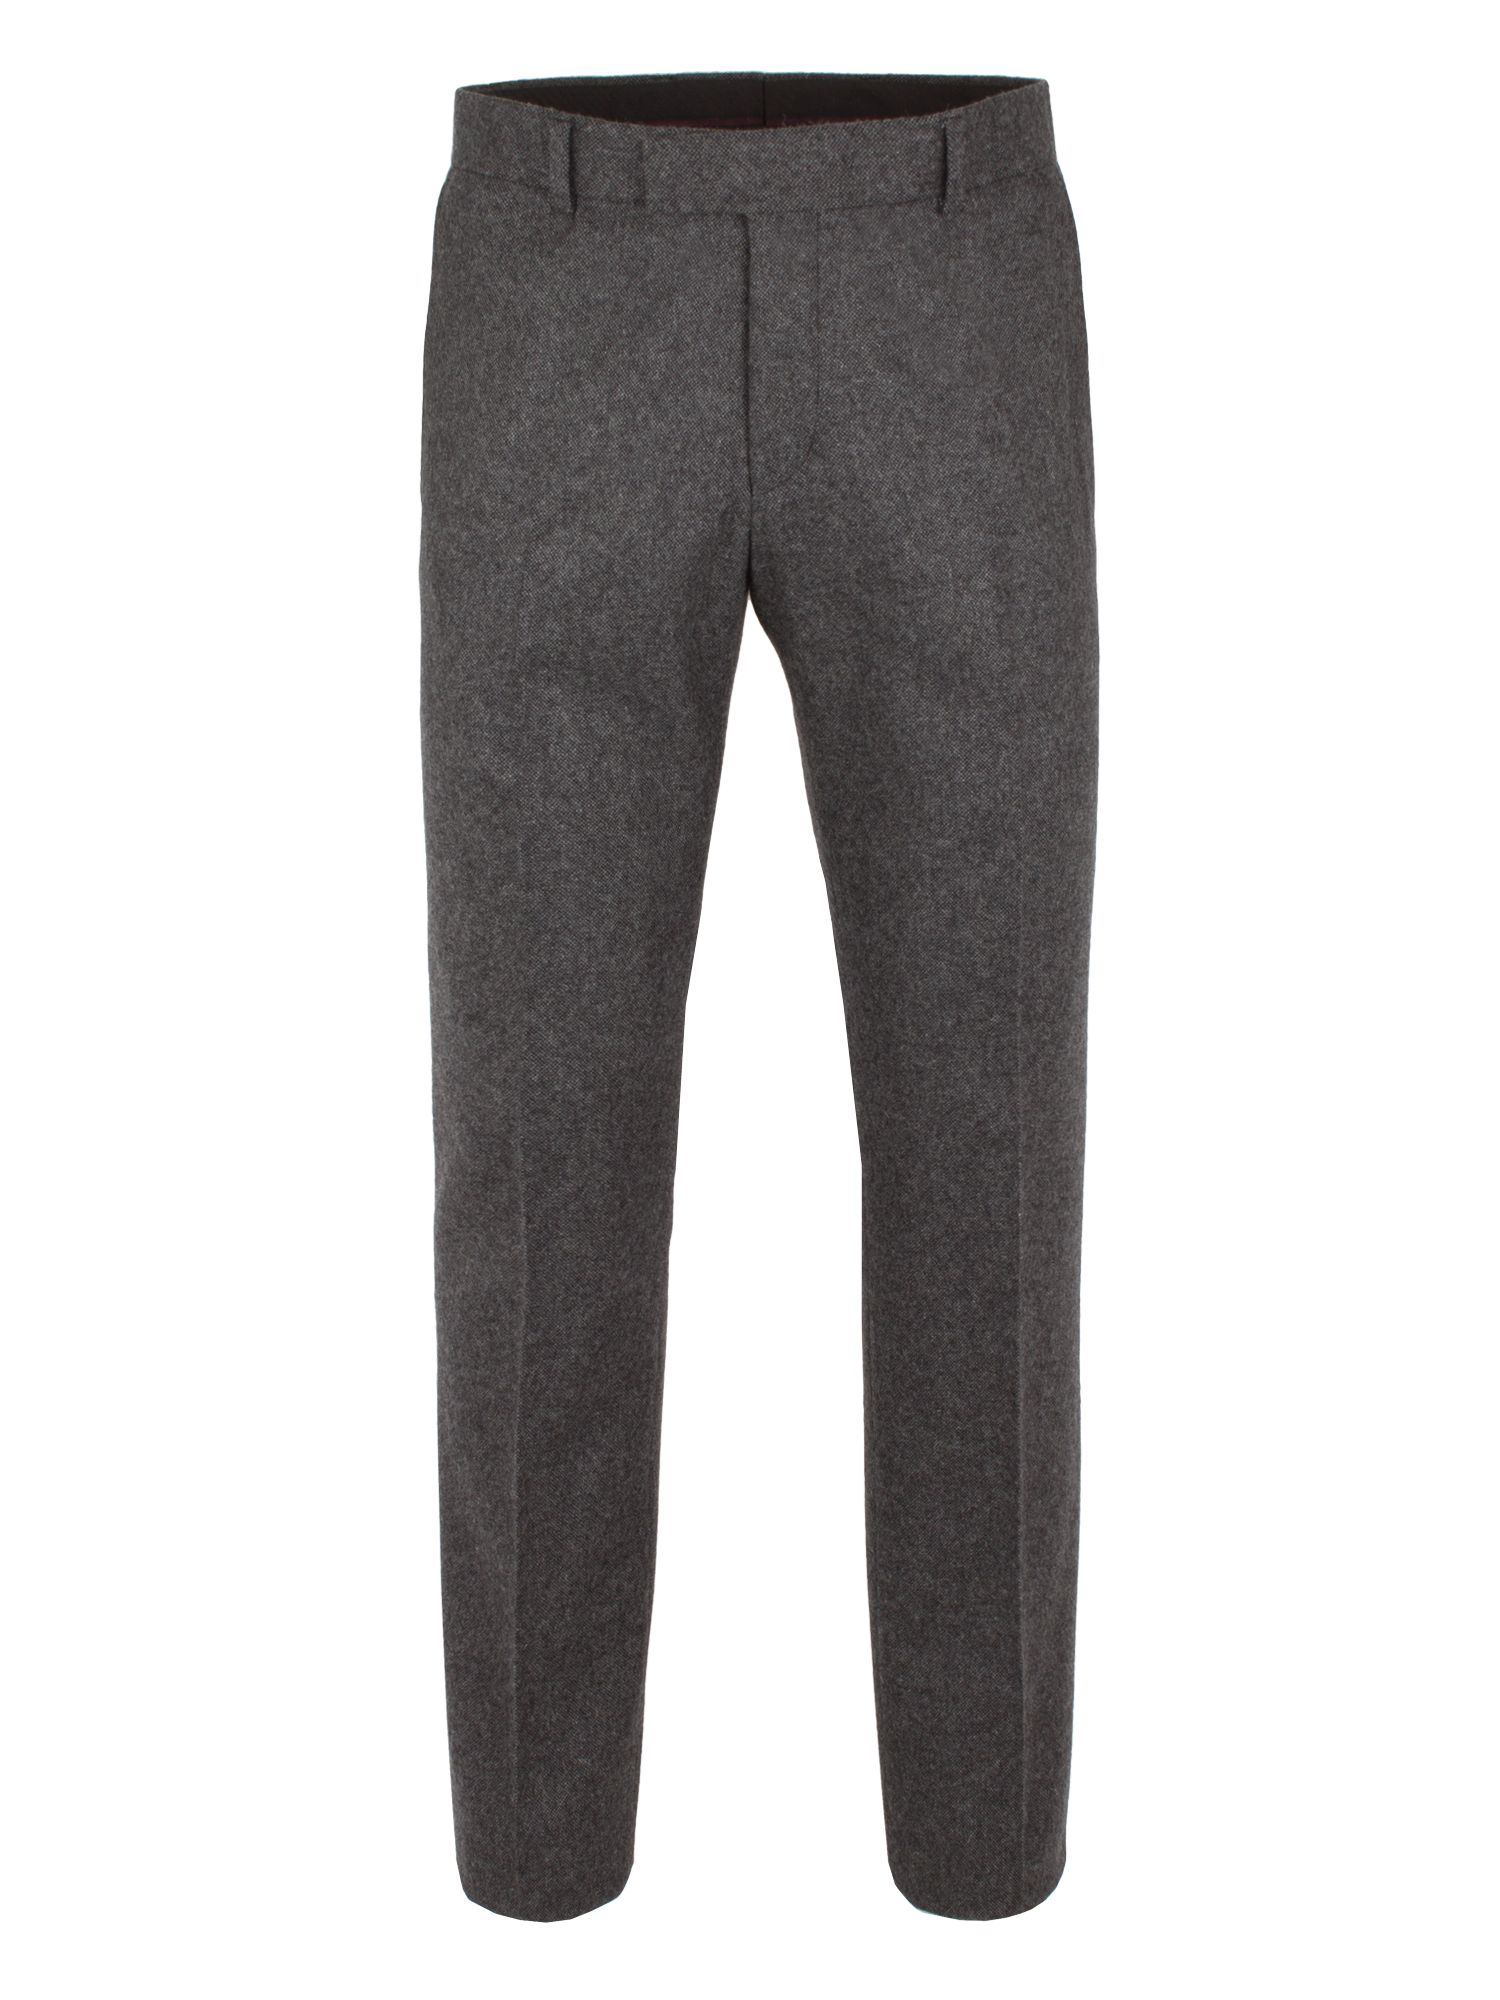 Alexandre of England Men's Alexandre of England Westcroft Donegal Trouser, Grey